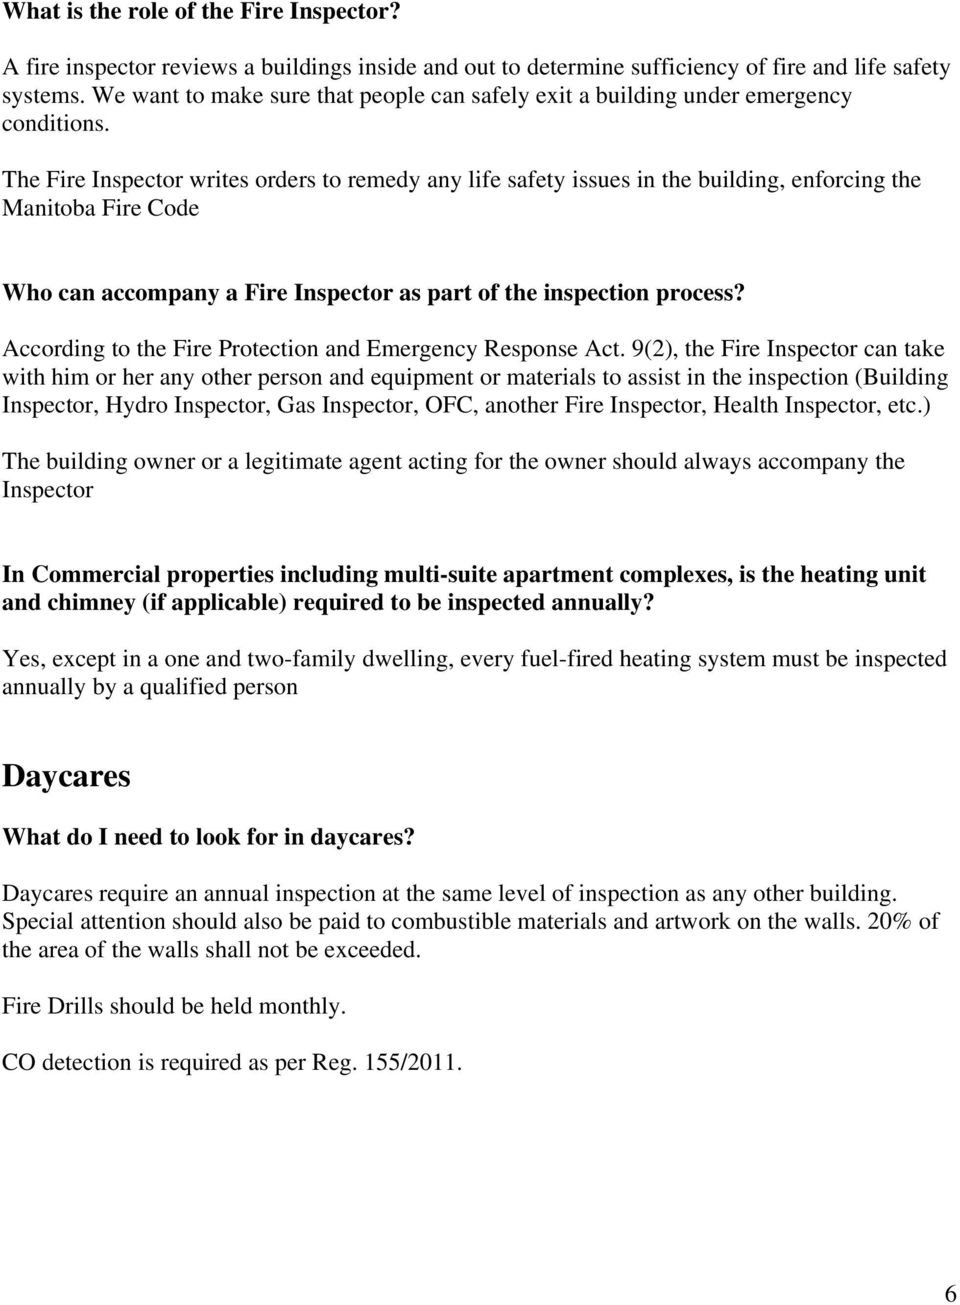 The Fire Inspector writes orders to remedy any life safety issues in the building, enforcing the Manitoba Fire Code Who can accompany a Fire Inspector as part of the inspection process?